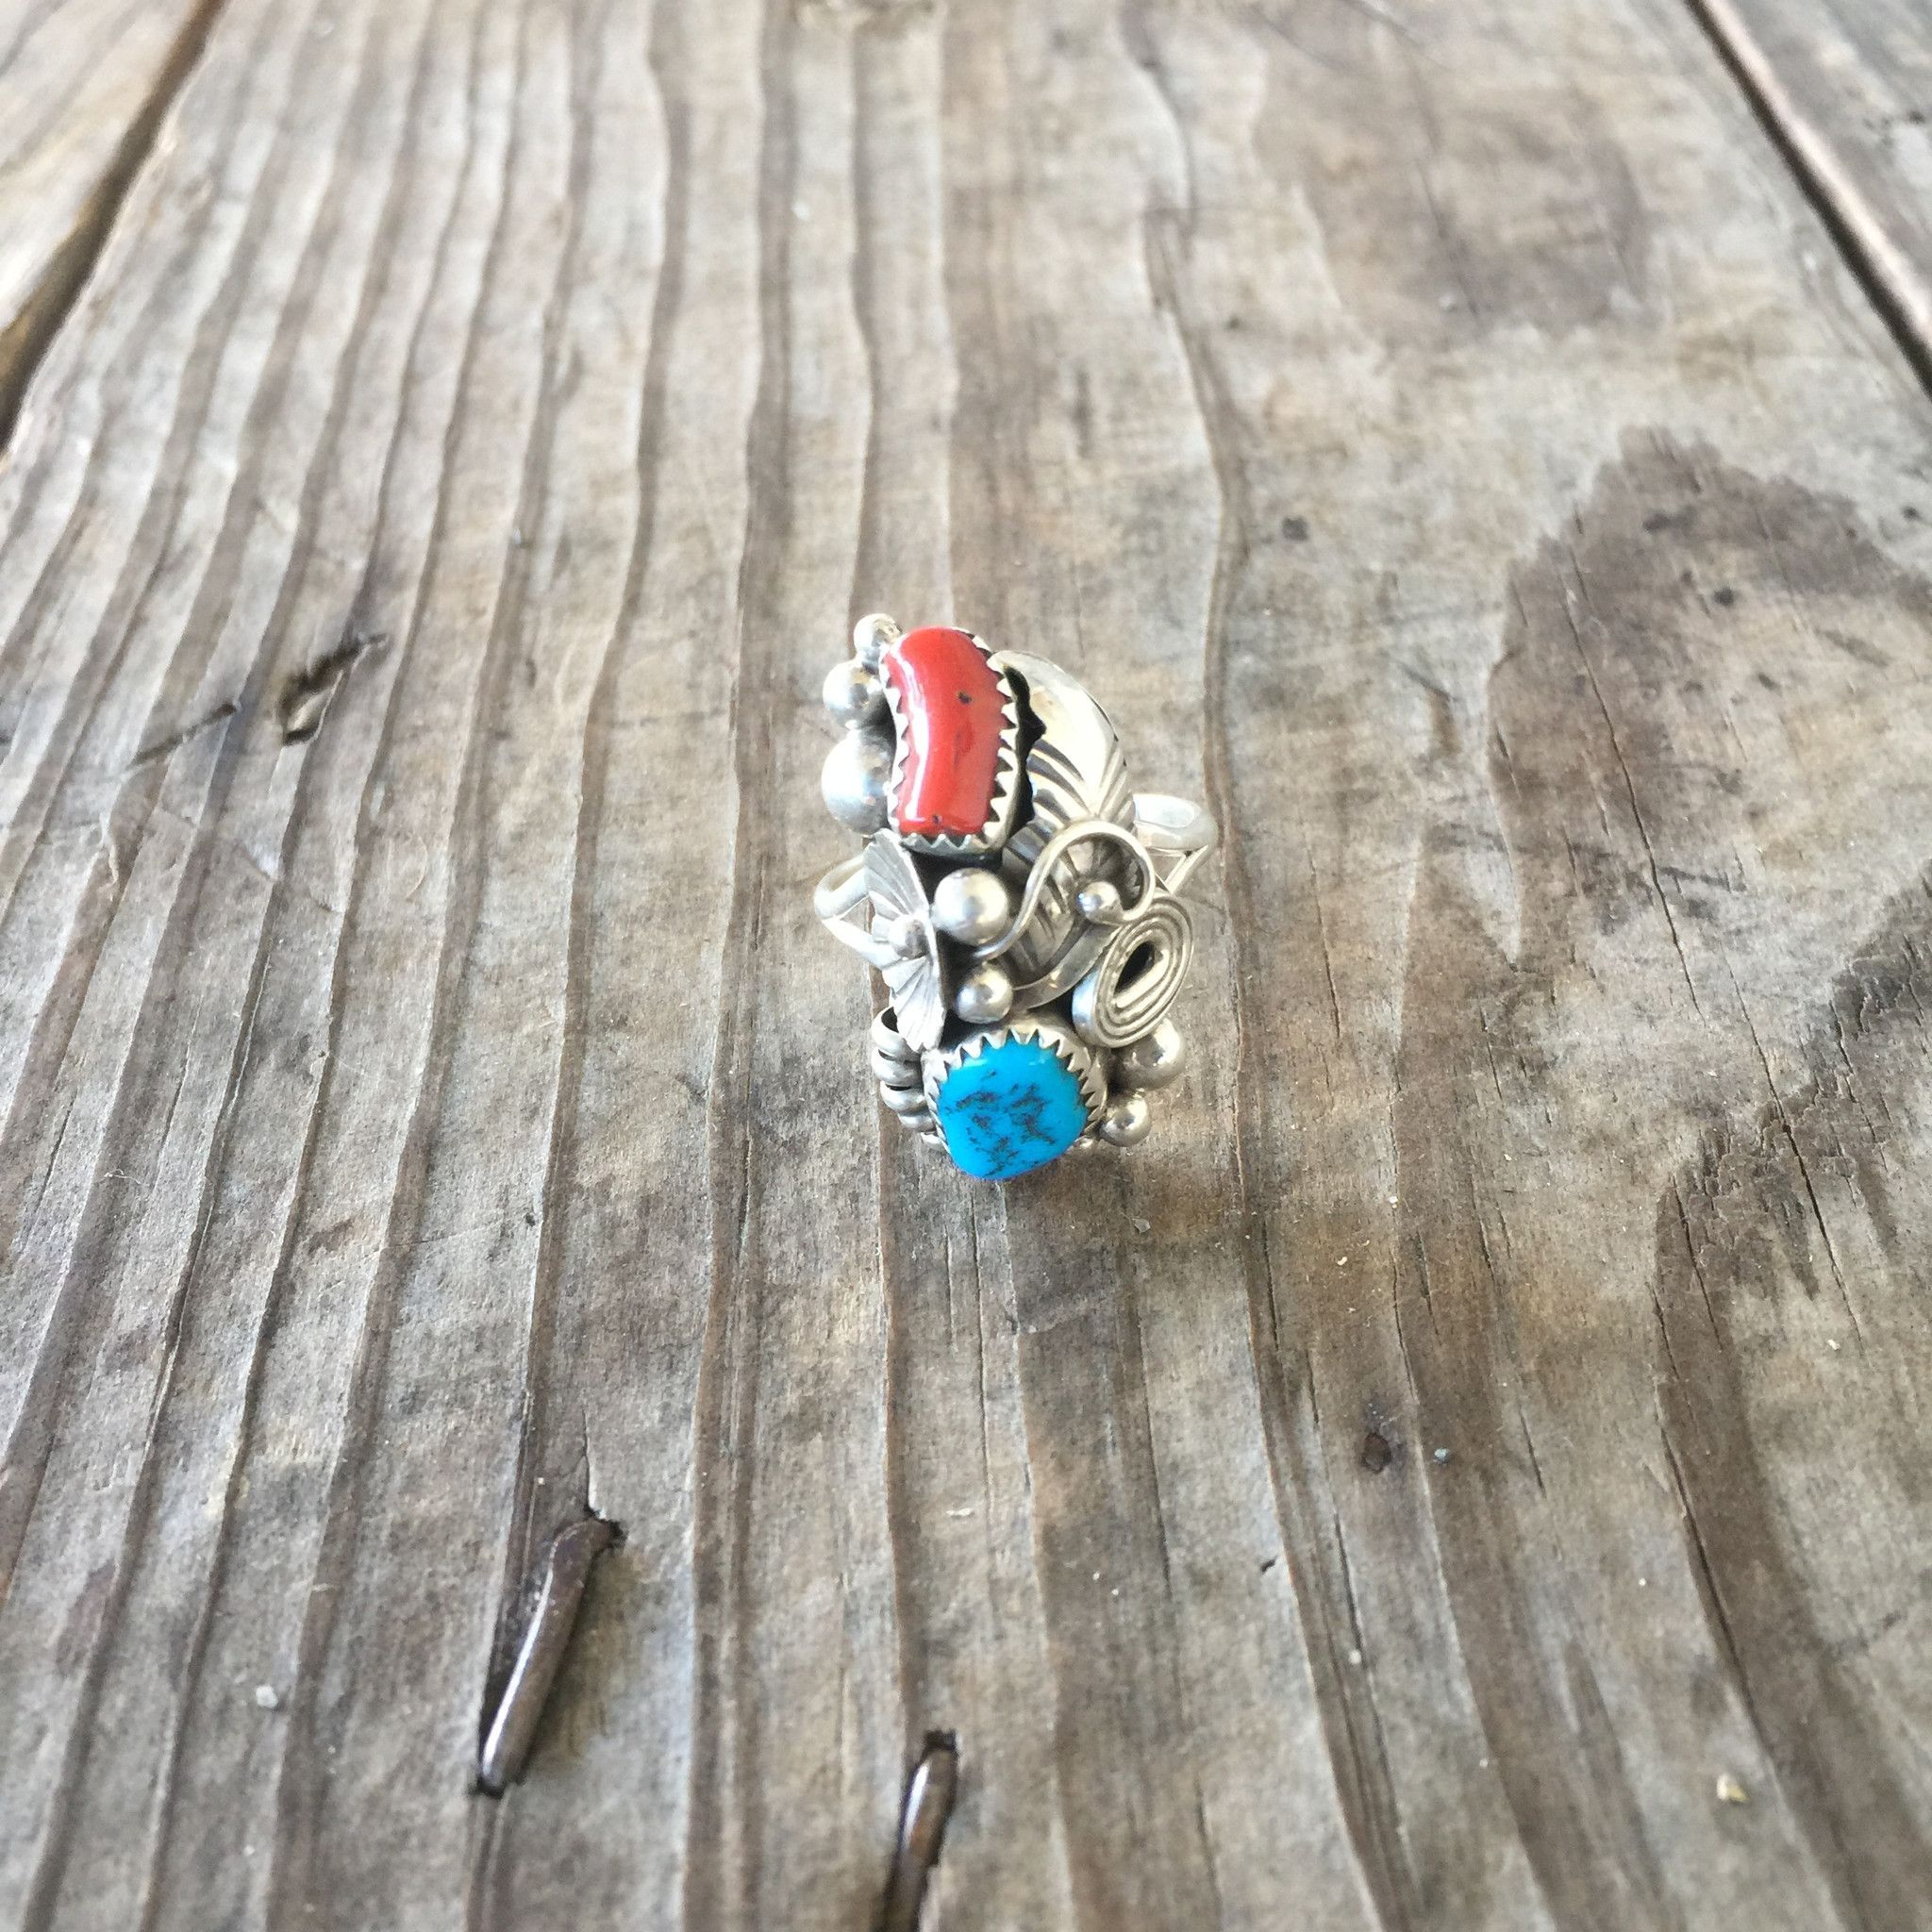 Vintage Turquoise and Coral Squash Ring